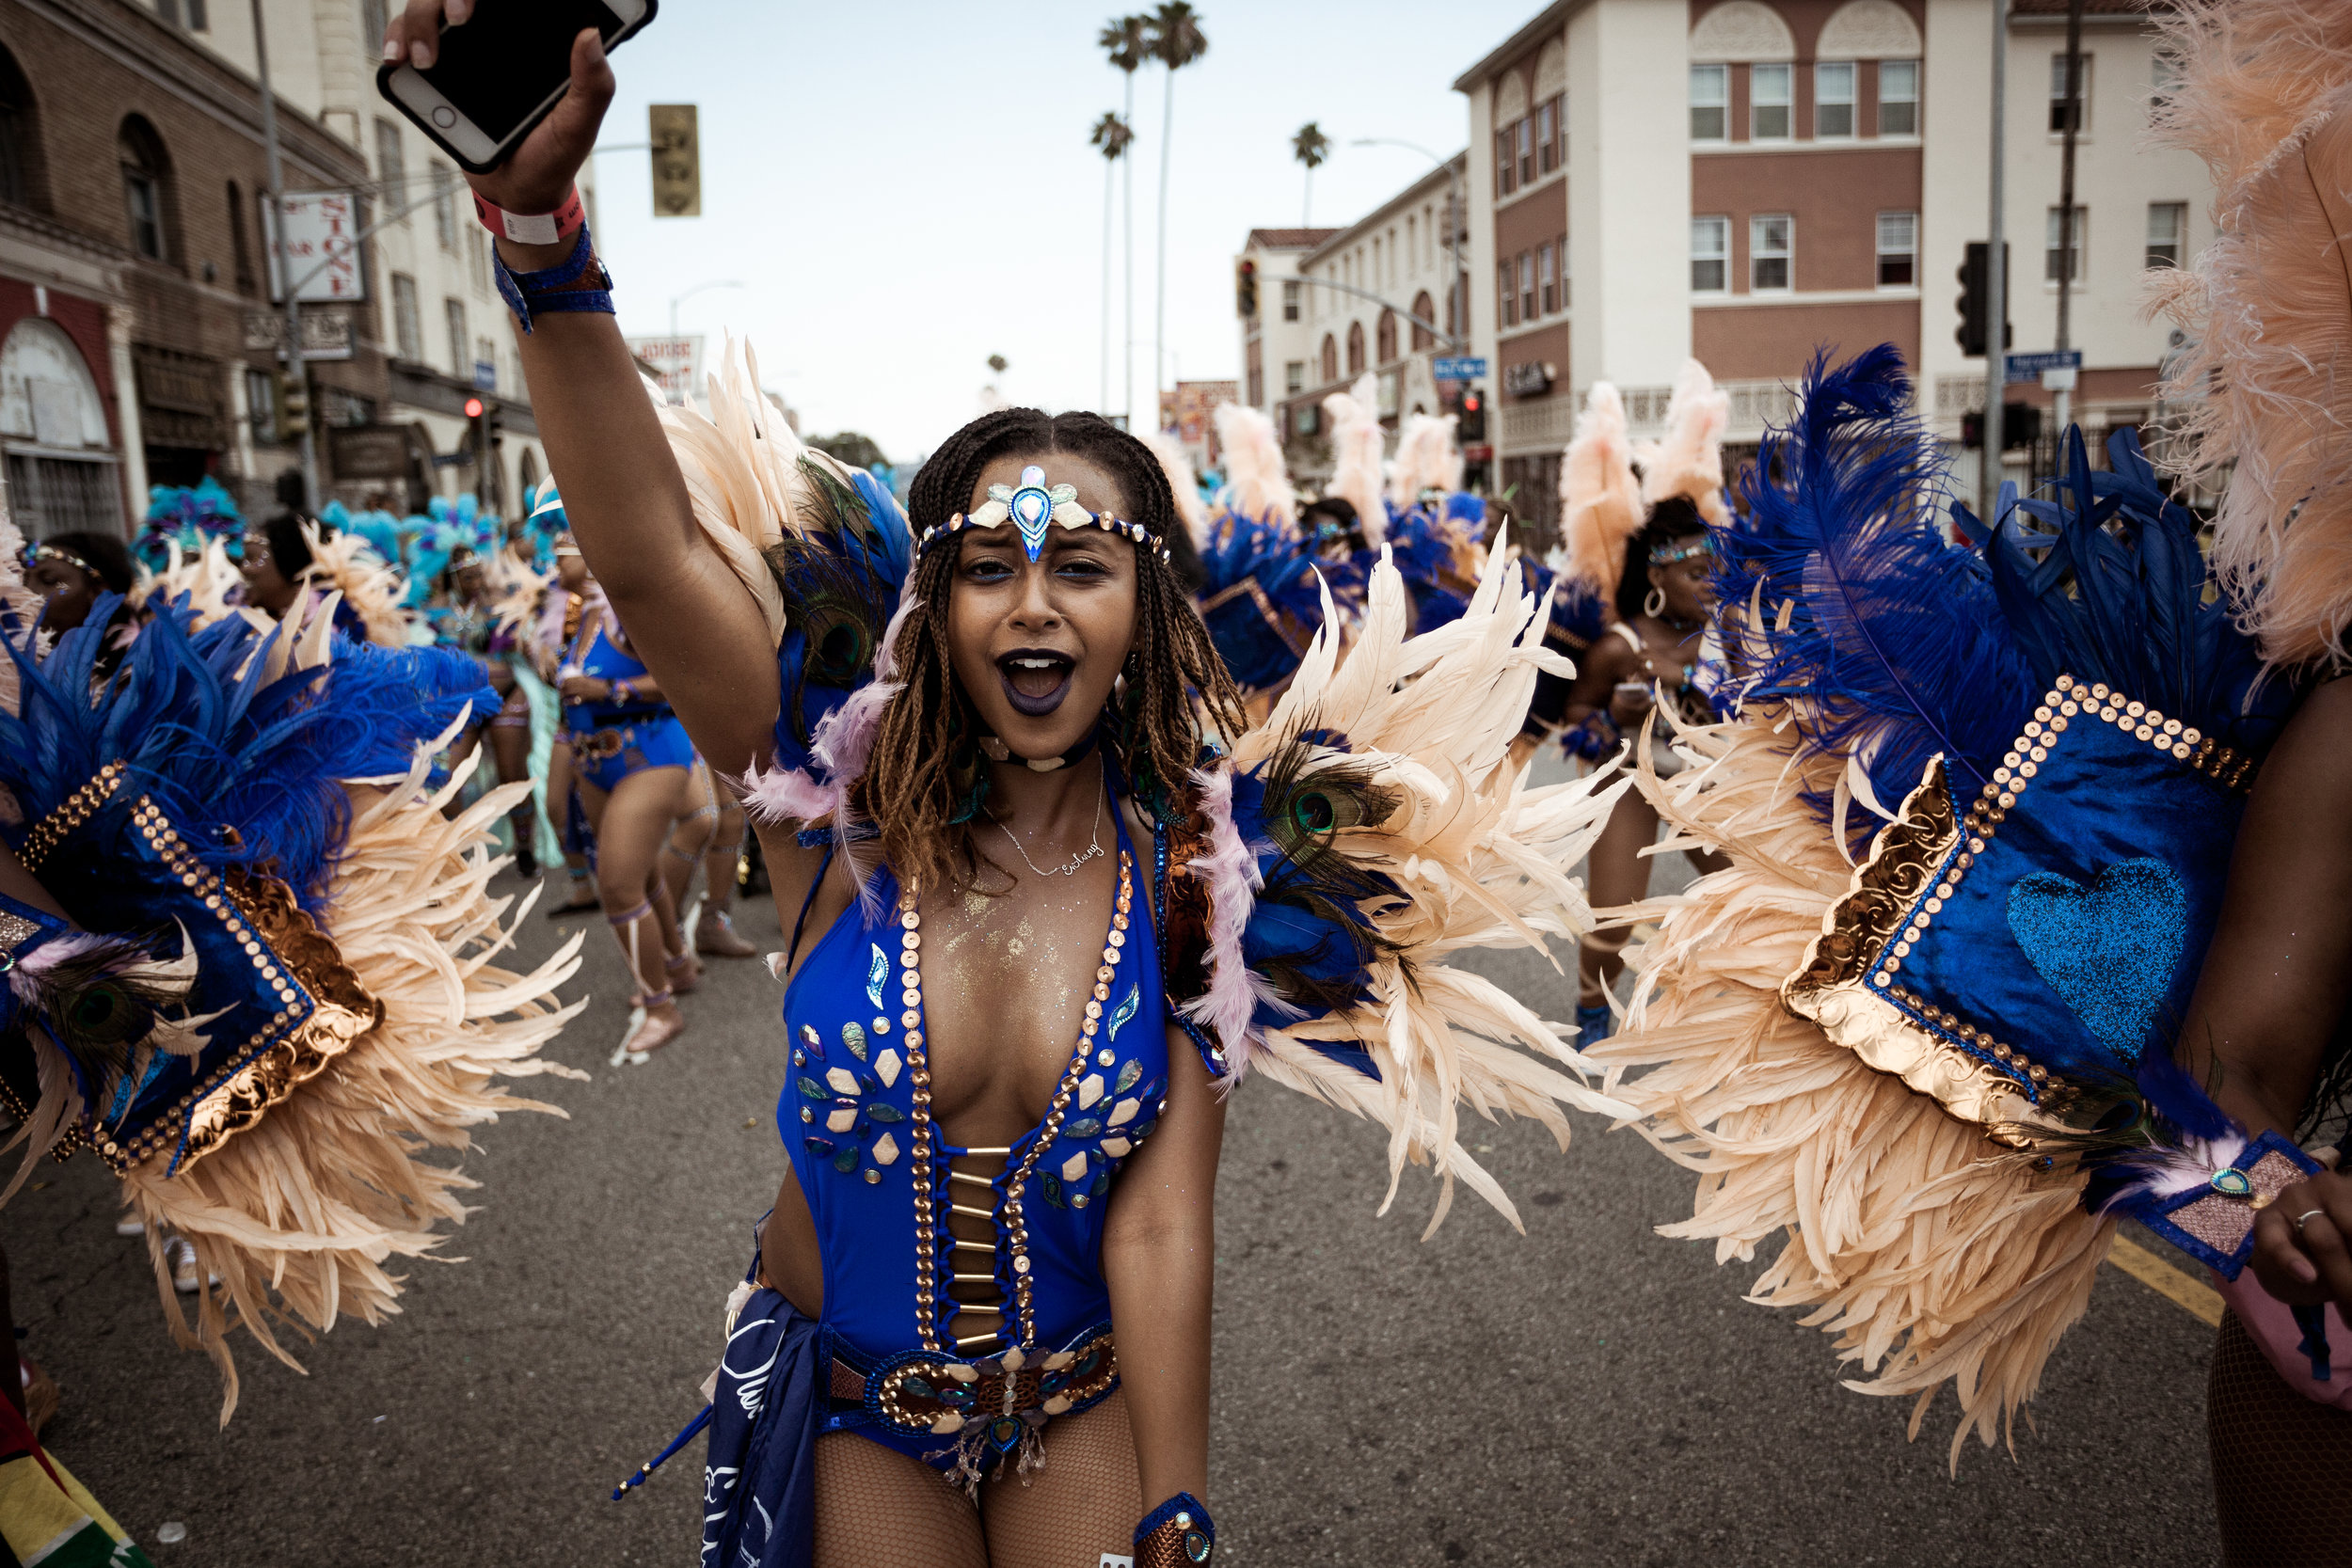 Chacon Images_Carnaval_Print-5675.jpg